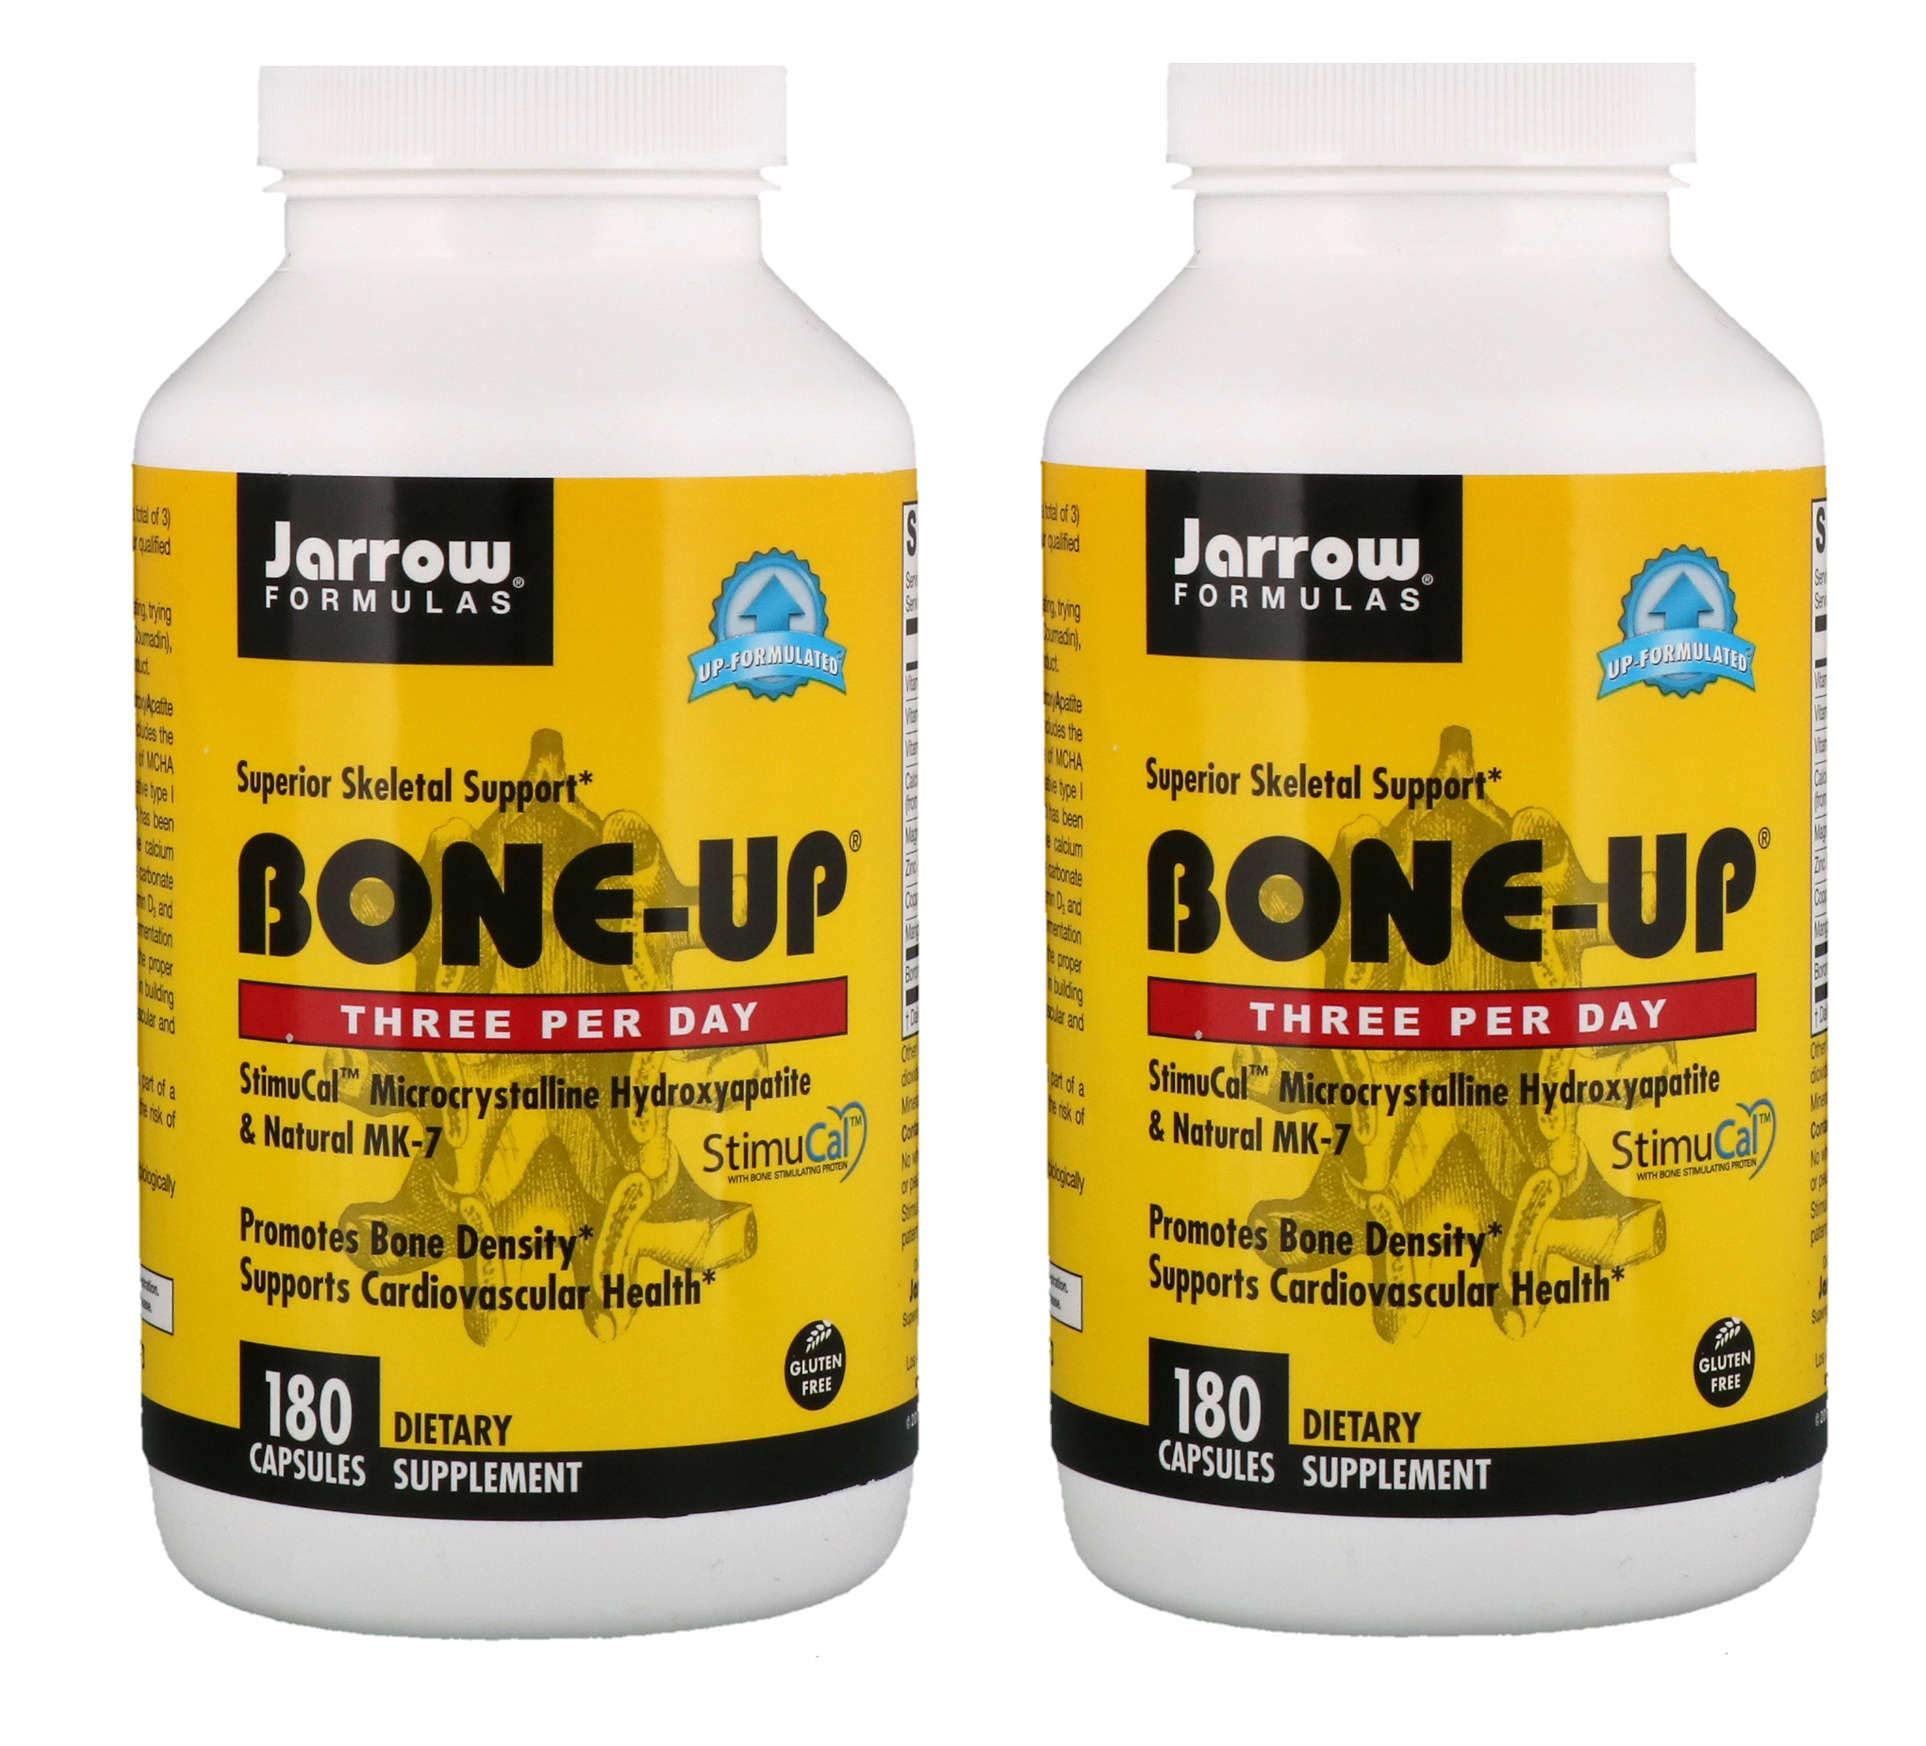 Jarrow Formulas Bone-Up Three Per Day for Superior Skeletal Support, Bone Density and Cardiovascular Health with StimuCal, Microcrystalline Hydroxyapatite and Natural MK-7 (180 Capsules) Pack of 2) by JARR0W